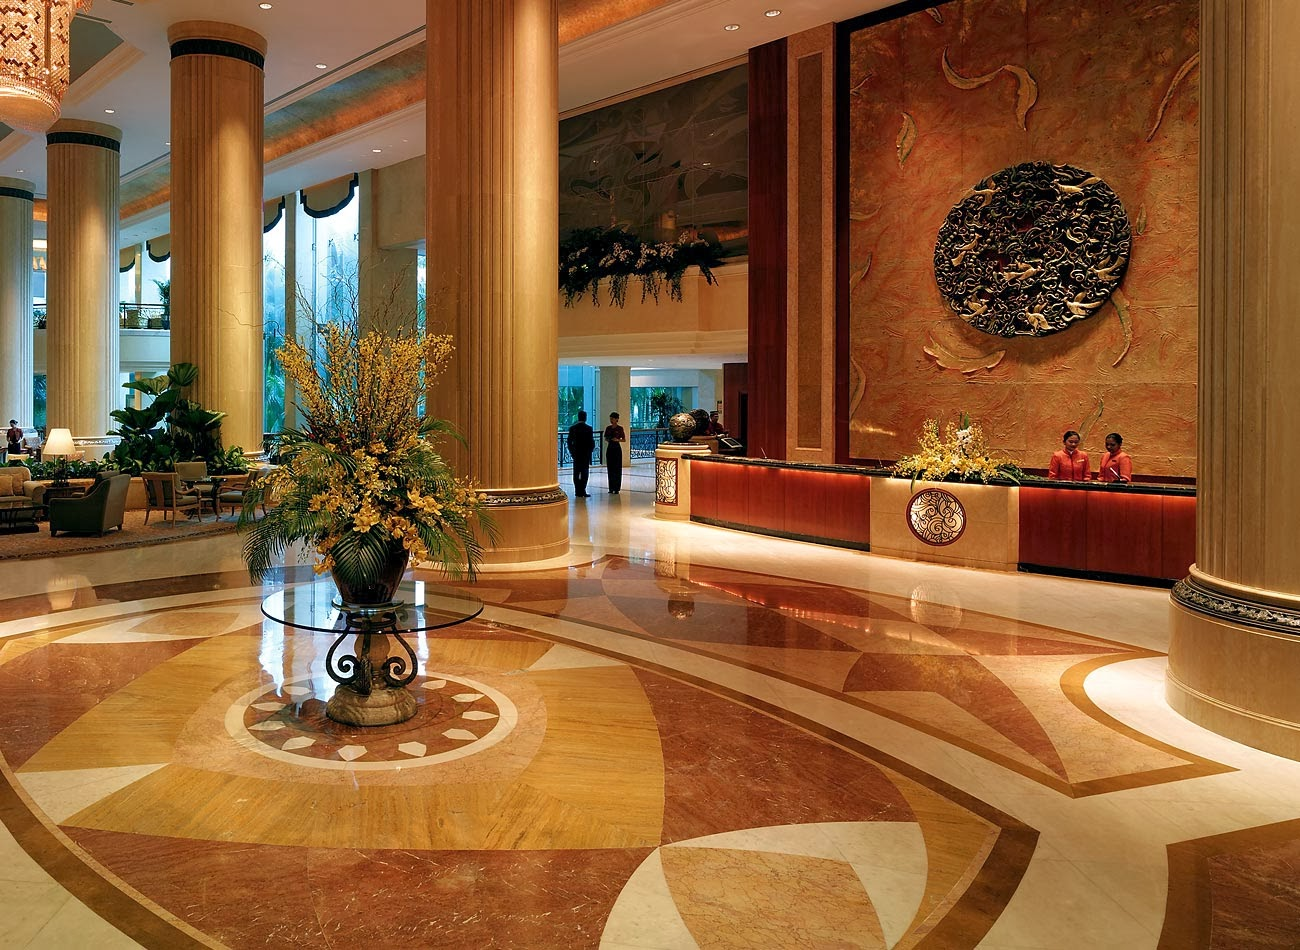 shangrila hotel Book the shangri-la hotel, singapore now and collect 1 free night for every 10 you book with hotelscom™ rewards unlock secret prices too and save up to 50.